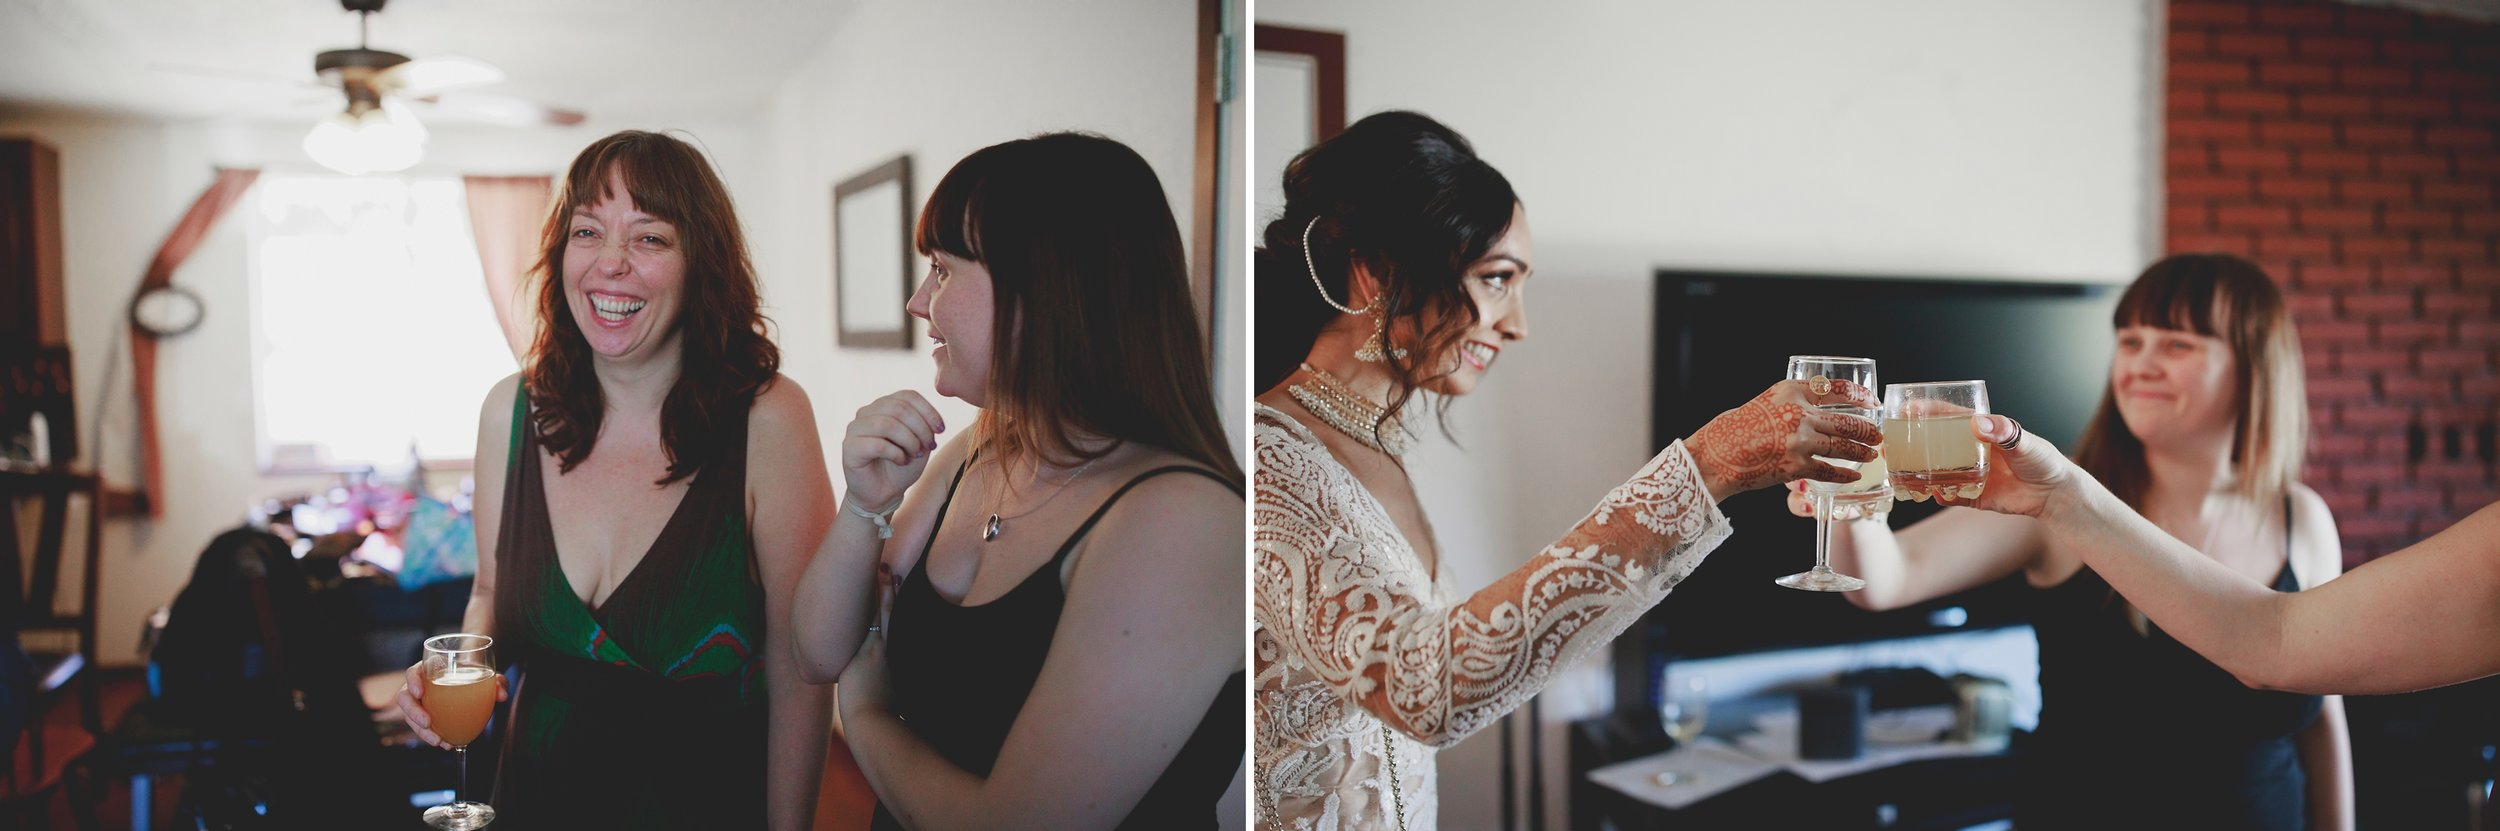 amanda_vanvels_joshua_tree_inn_wedding_026.jpg